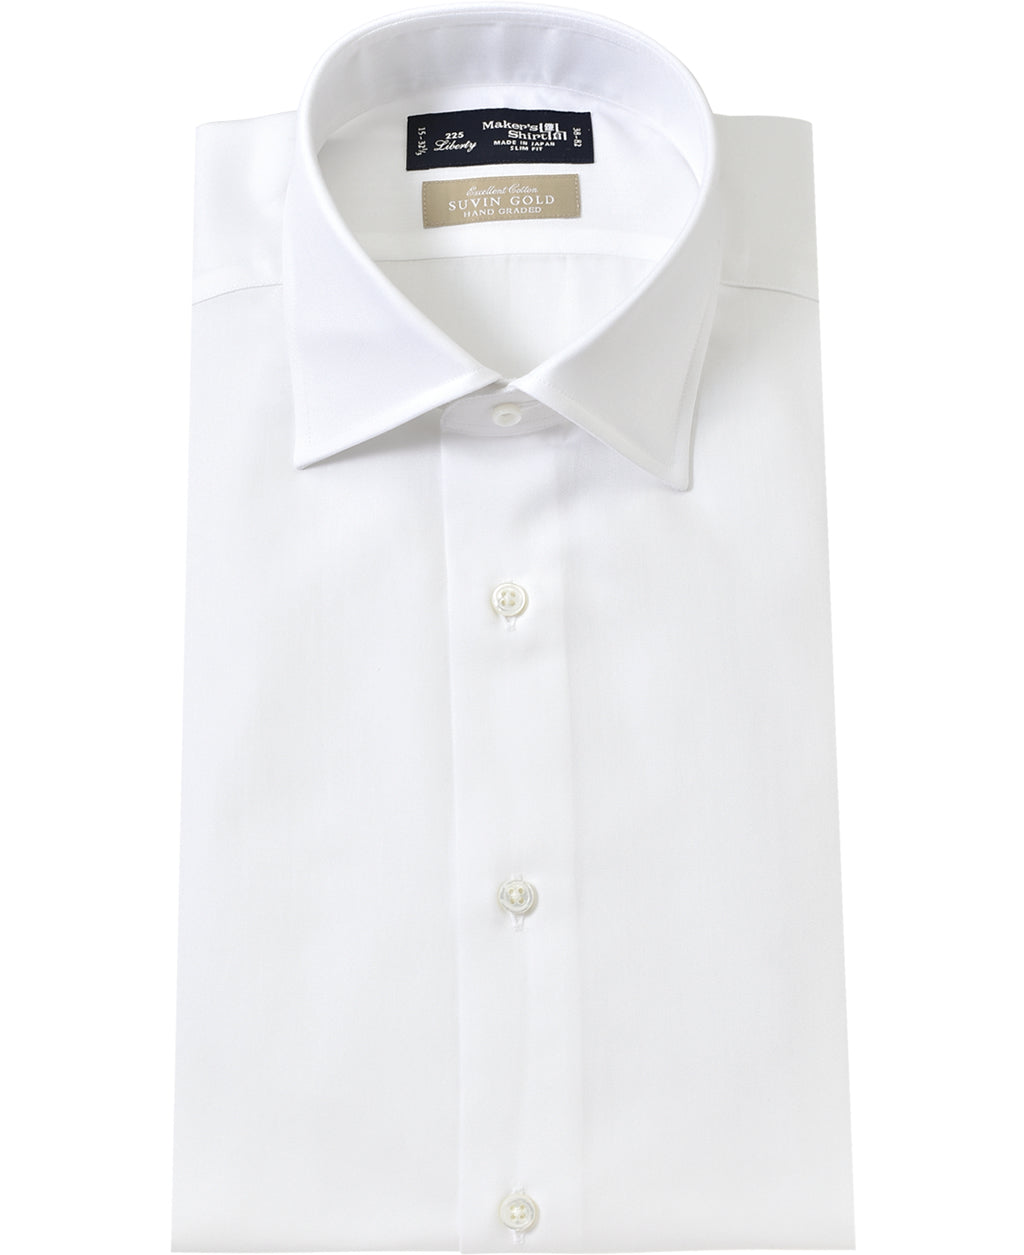 Whtie cotton shirt